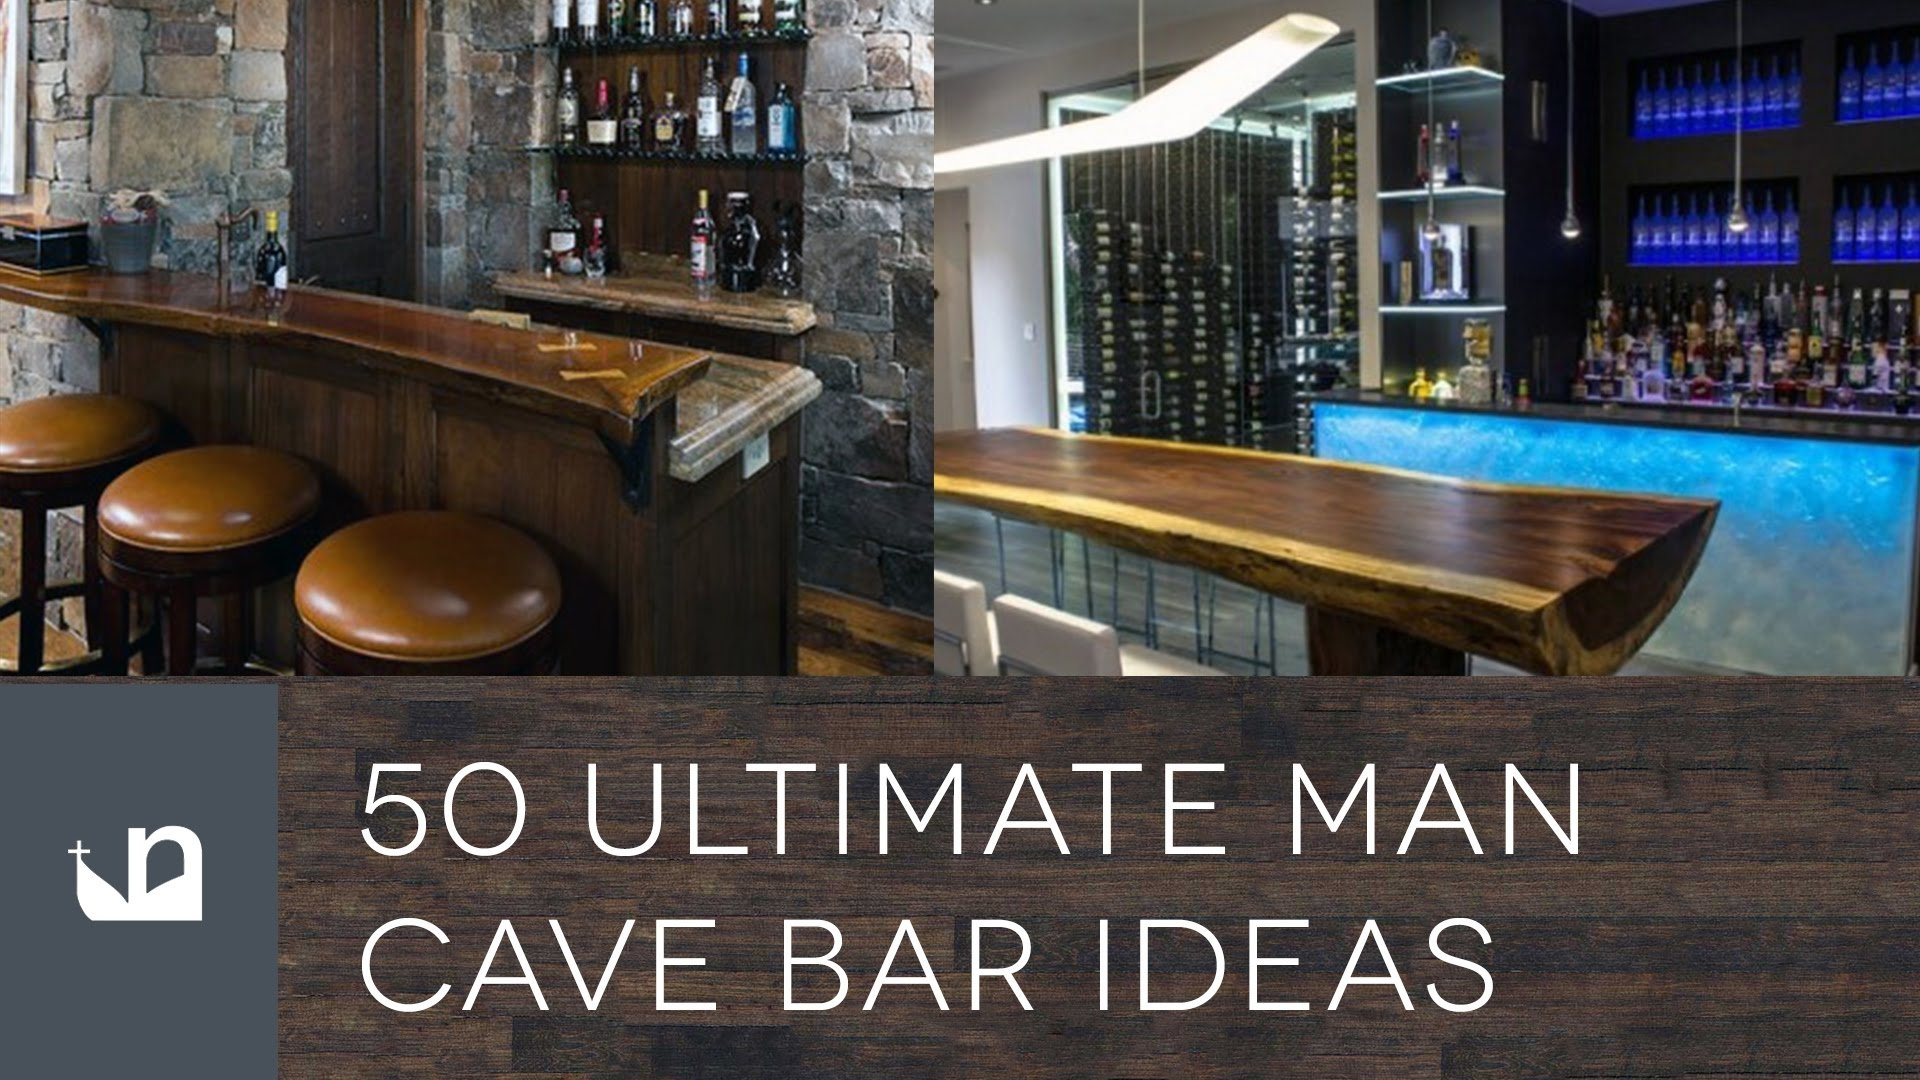 10 Perfect Man Cave Ideas For A Small Room 50 ultimate man cave bar ideas youtube 1 2021